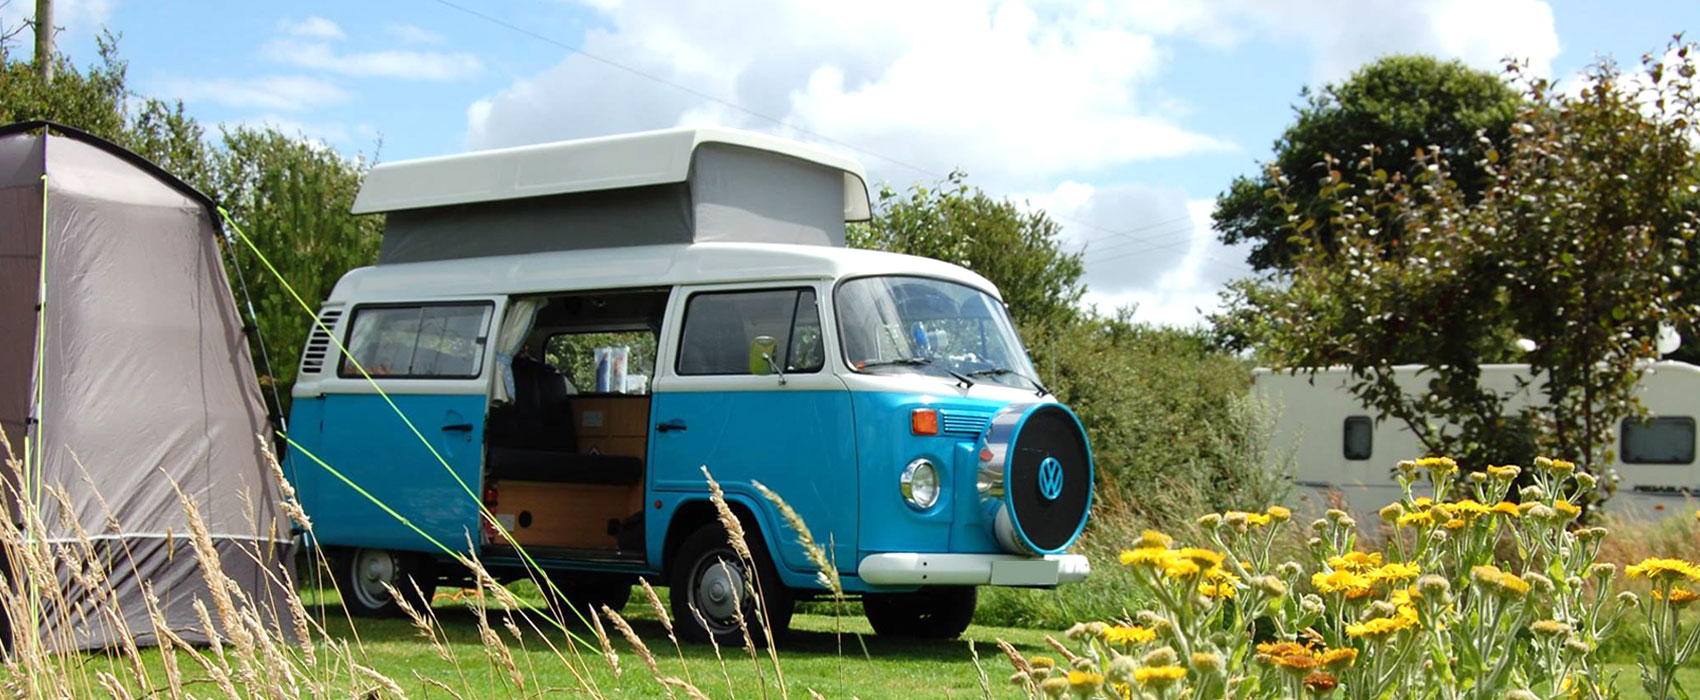 Book Your VW Campervan Devon Experience